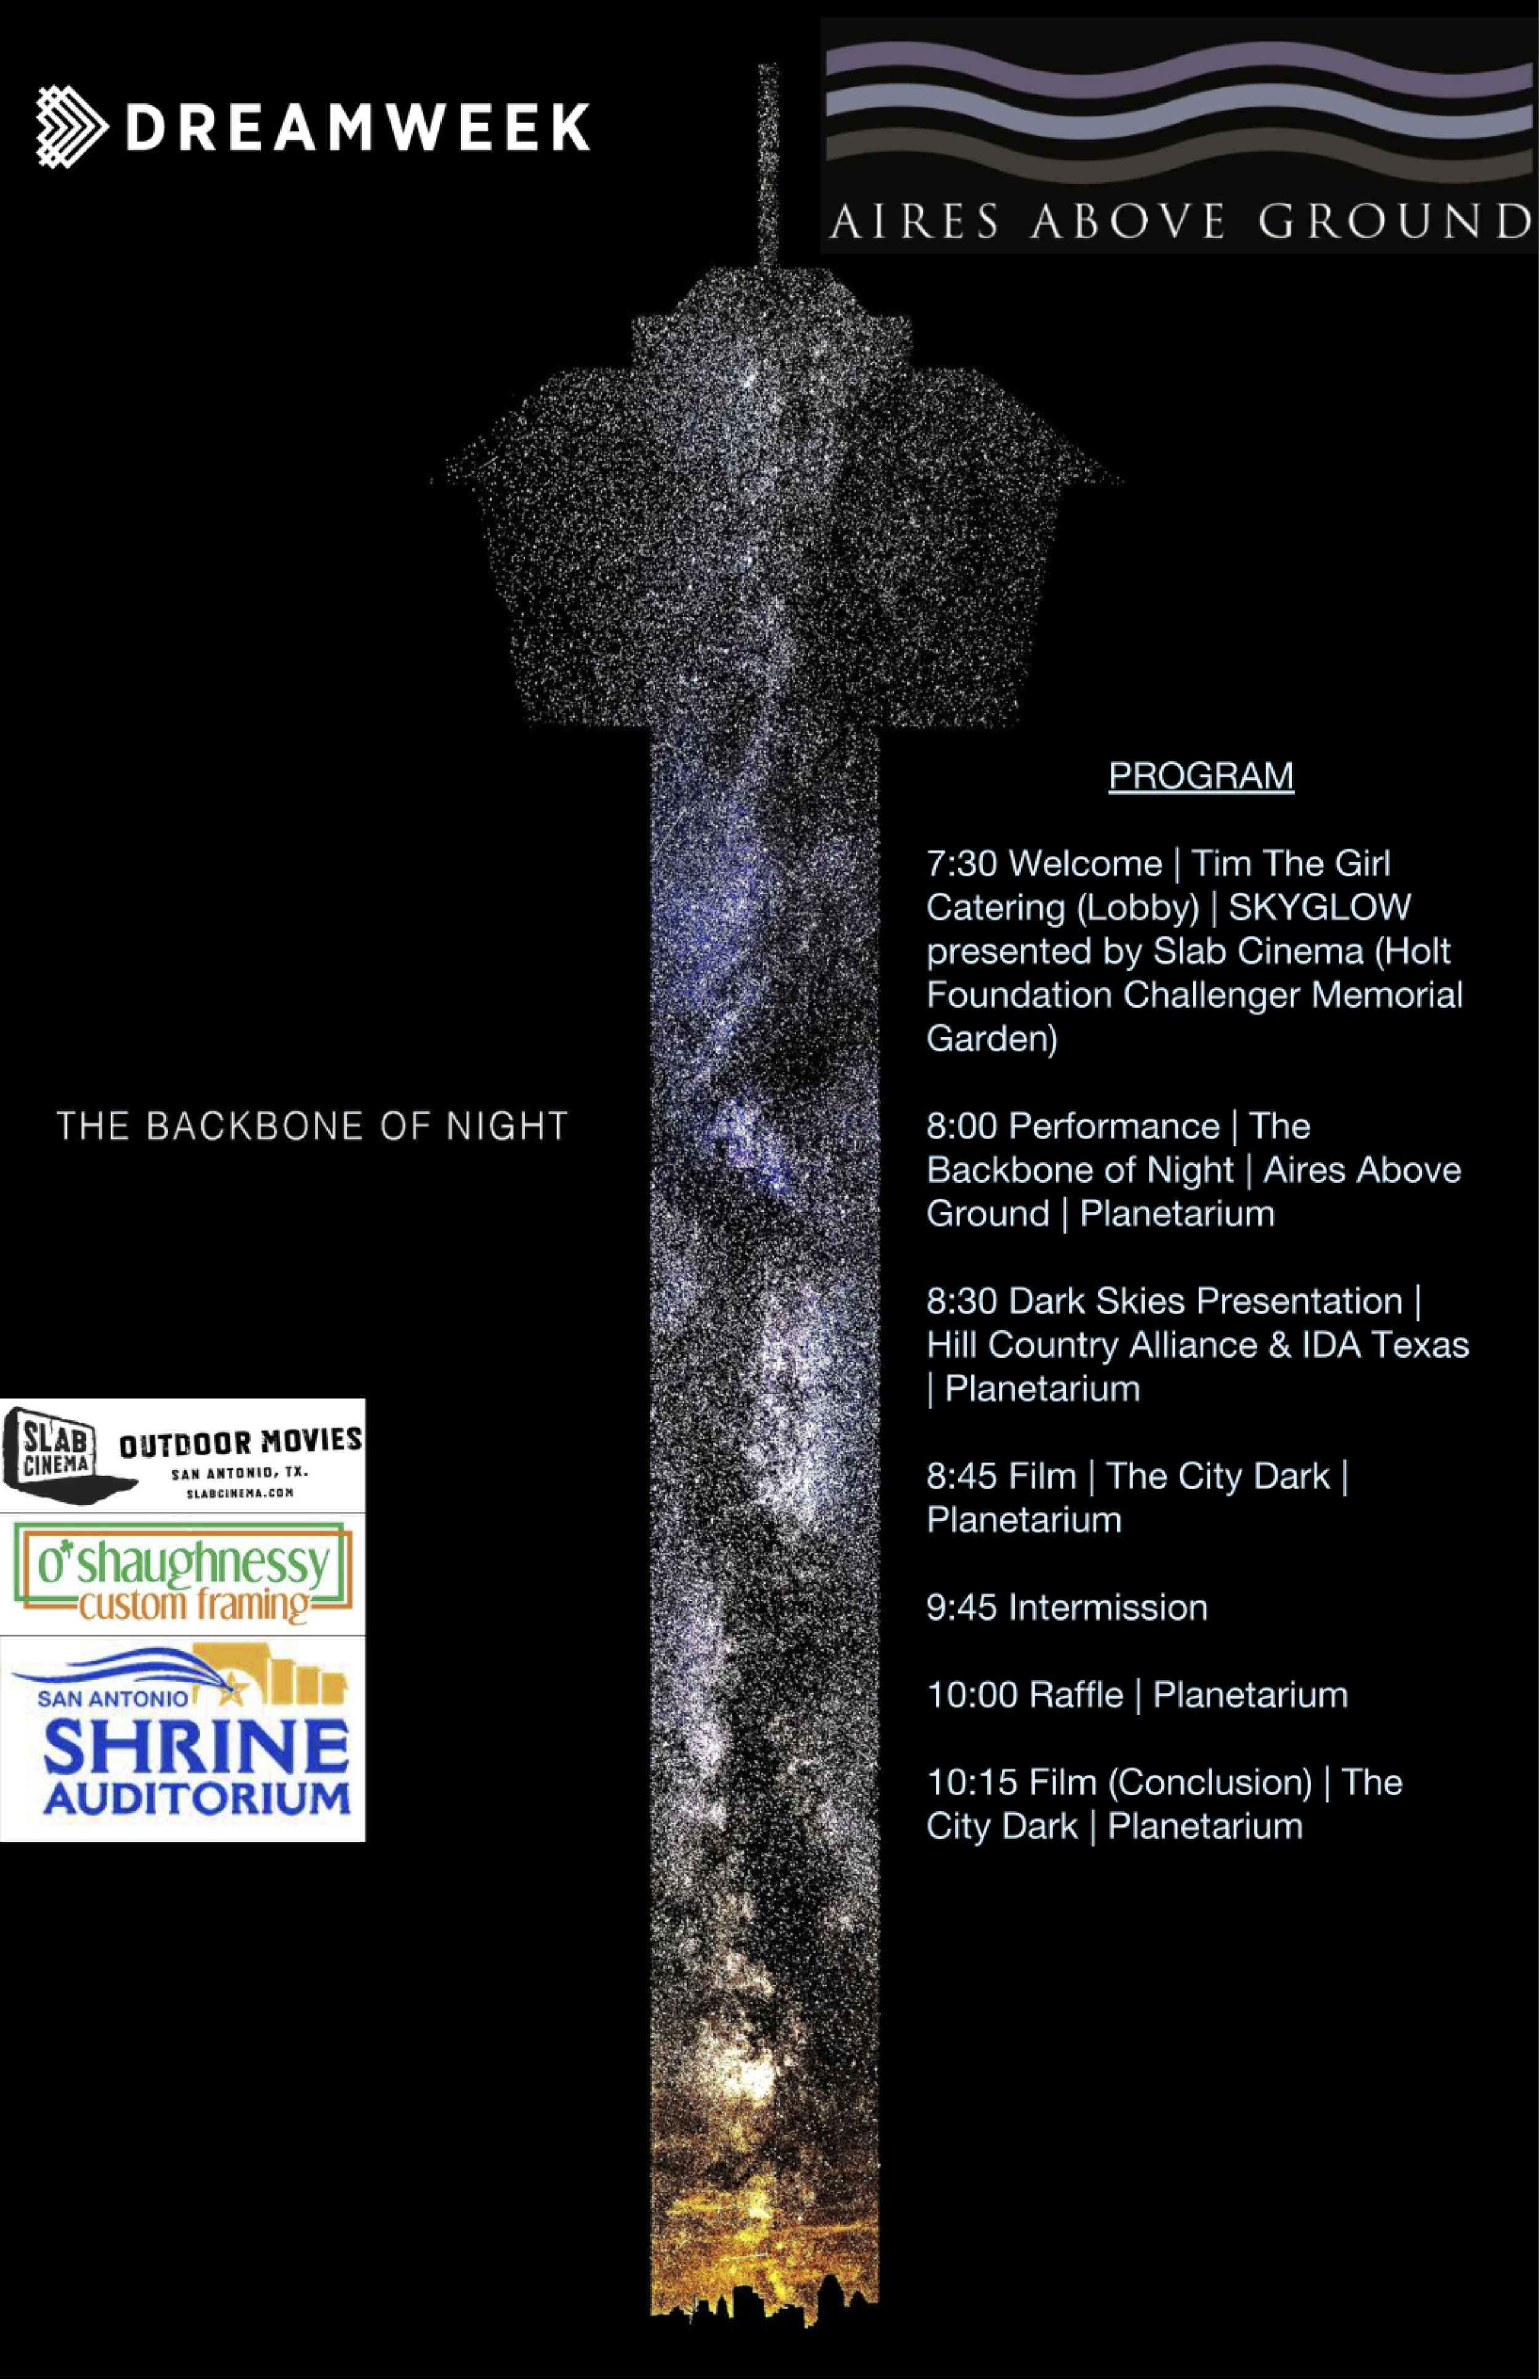 Past Events - The Backbone of Night @ Scobee Education CenterJanuary 11, 2019